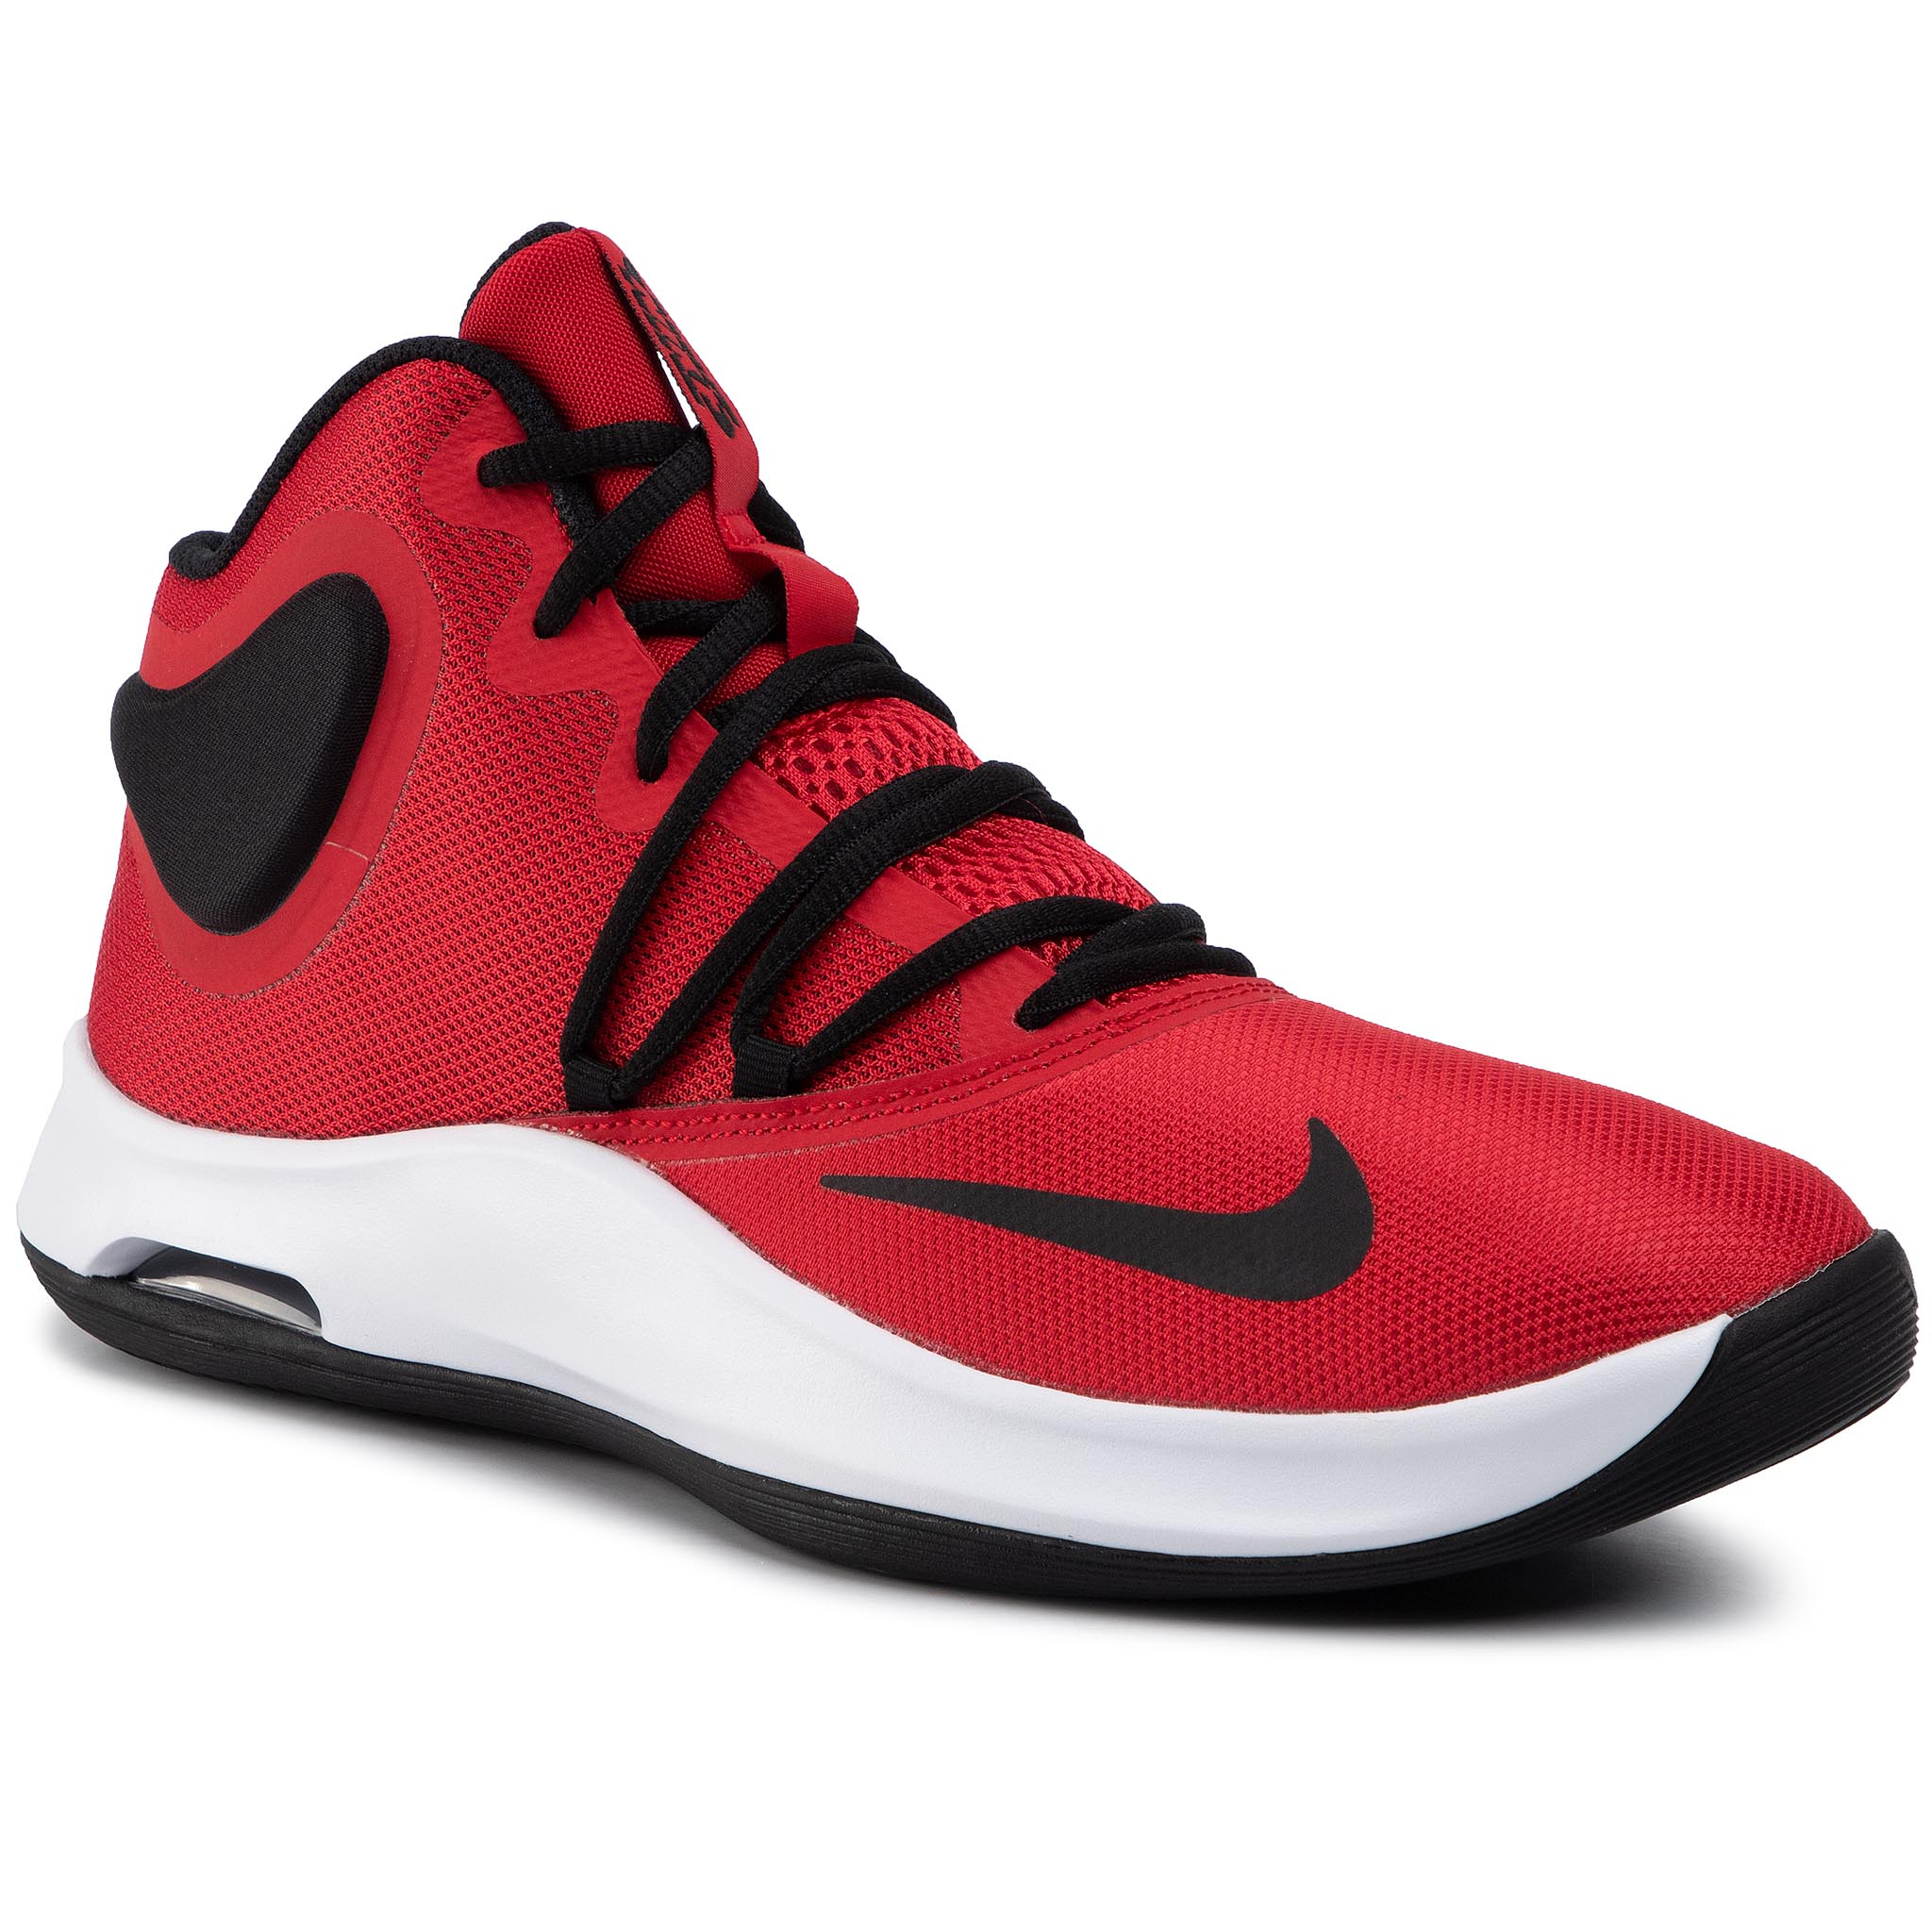 Pantofi Nike - Air Versitile Iv At1199 600 University Red/Black/White imagine